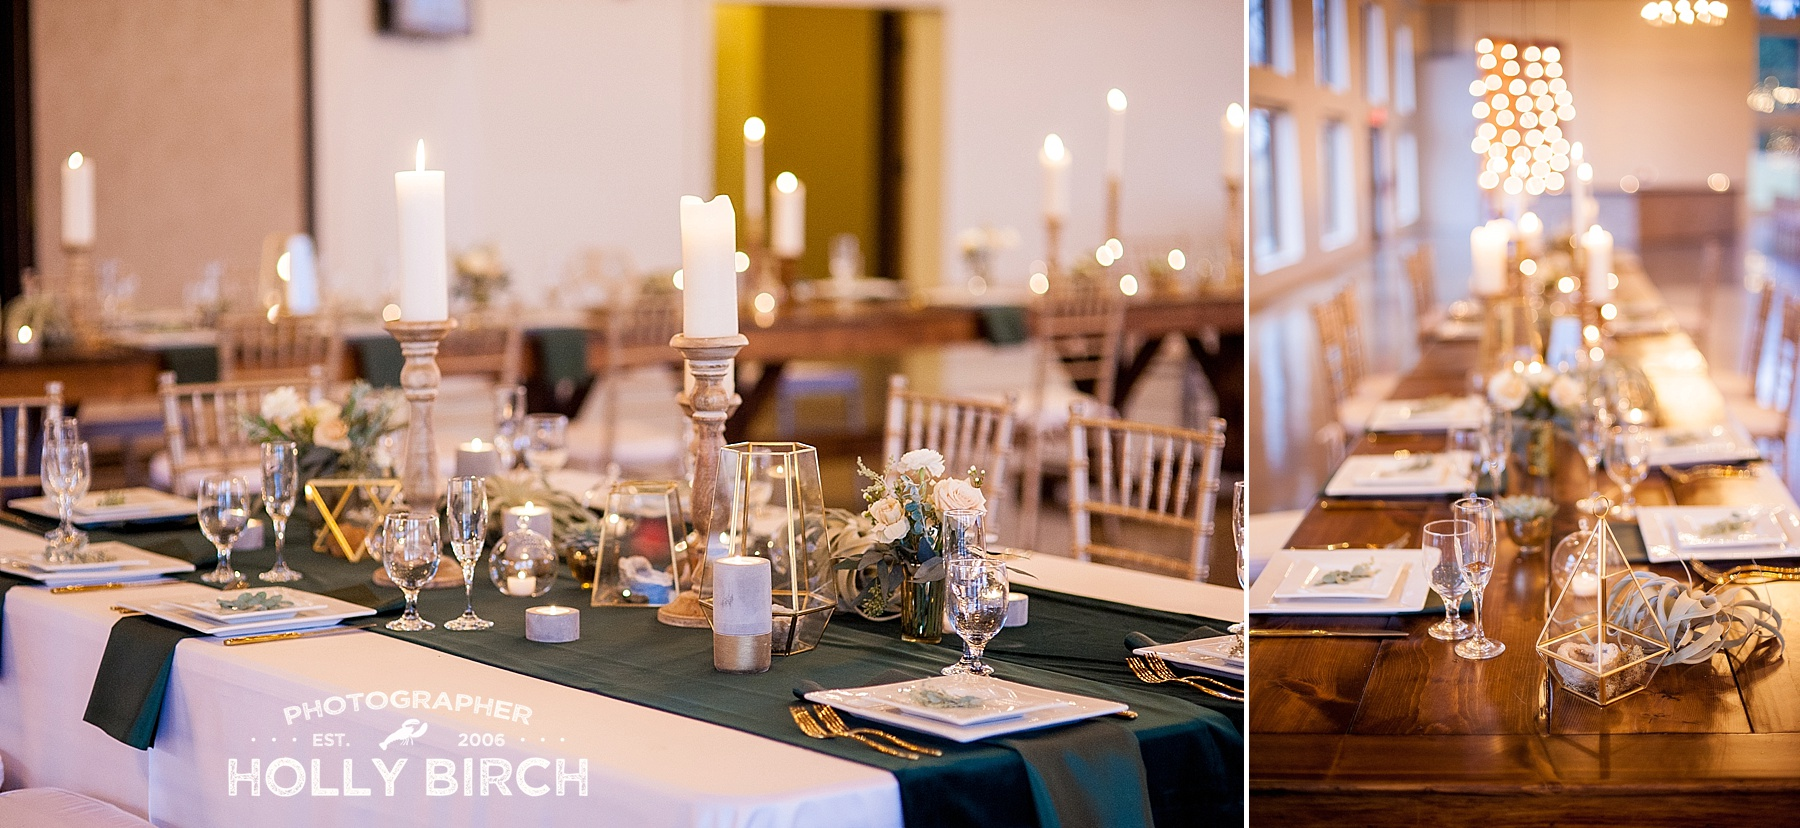 green velvet table runners with gold accents